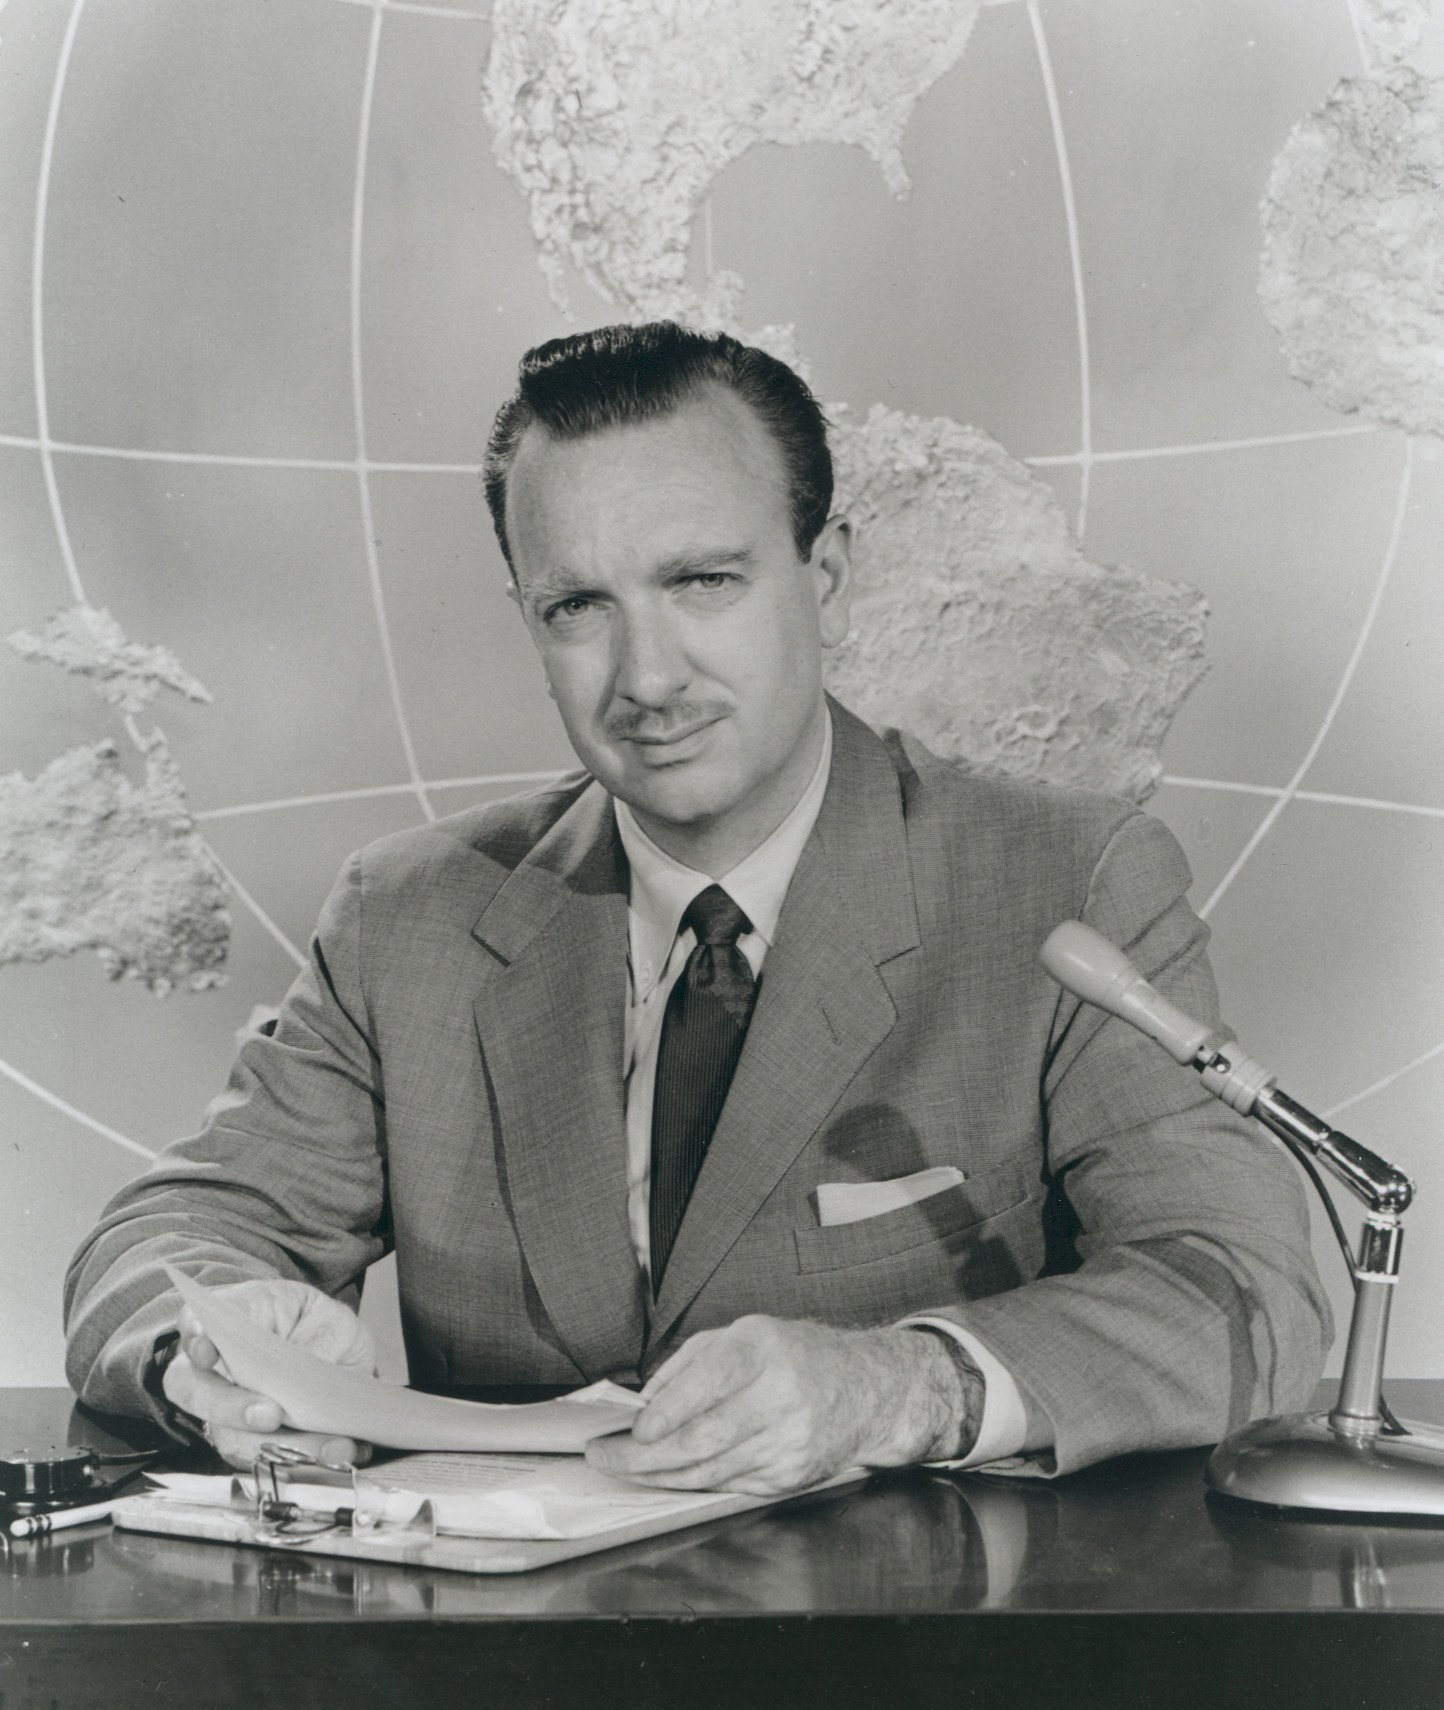 Portrait of Walter Cronkite circa 1954 | Source: Getty Images